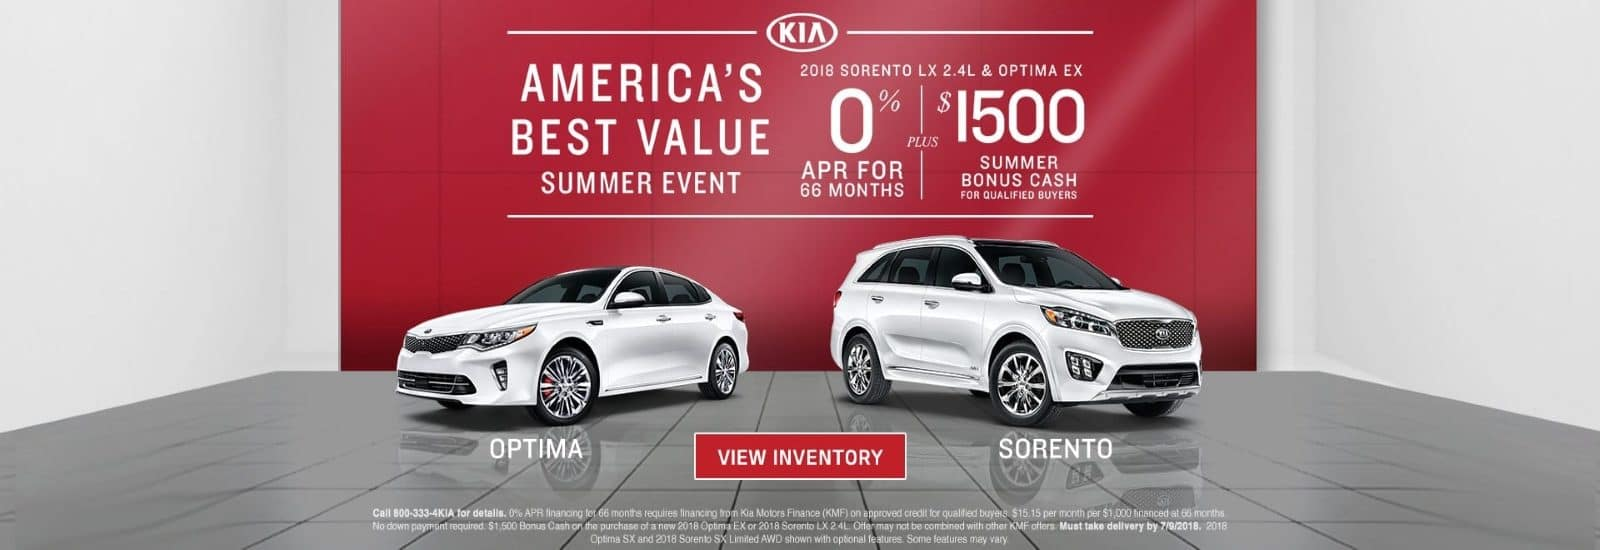 Kia Americas Best Value Sales Event - Optima Sorento